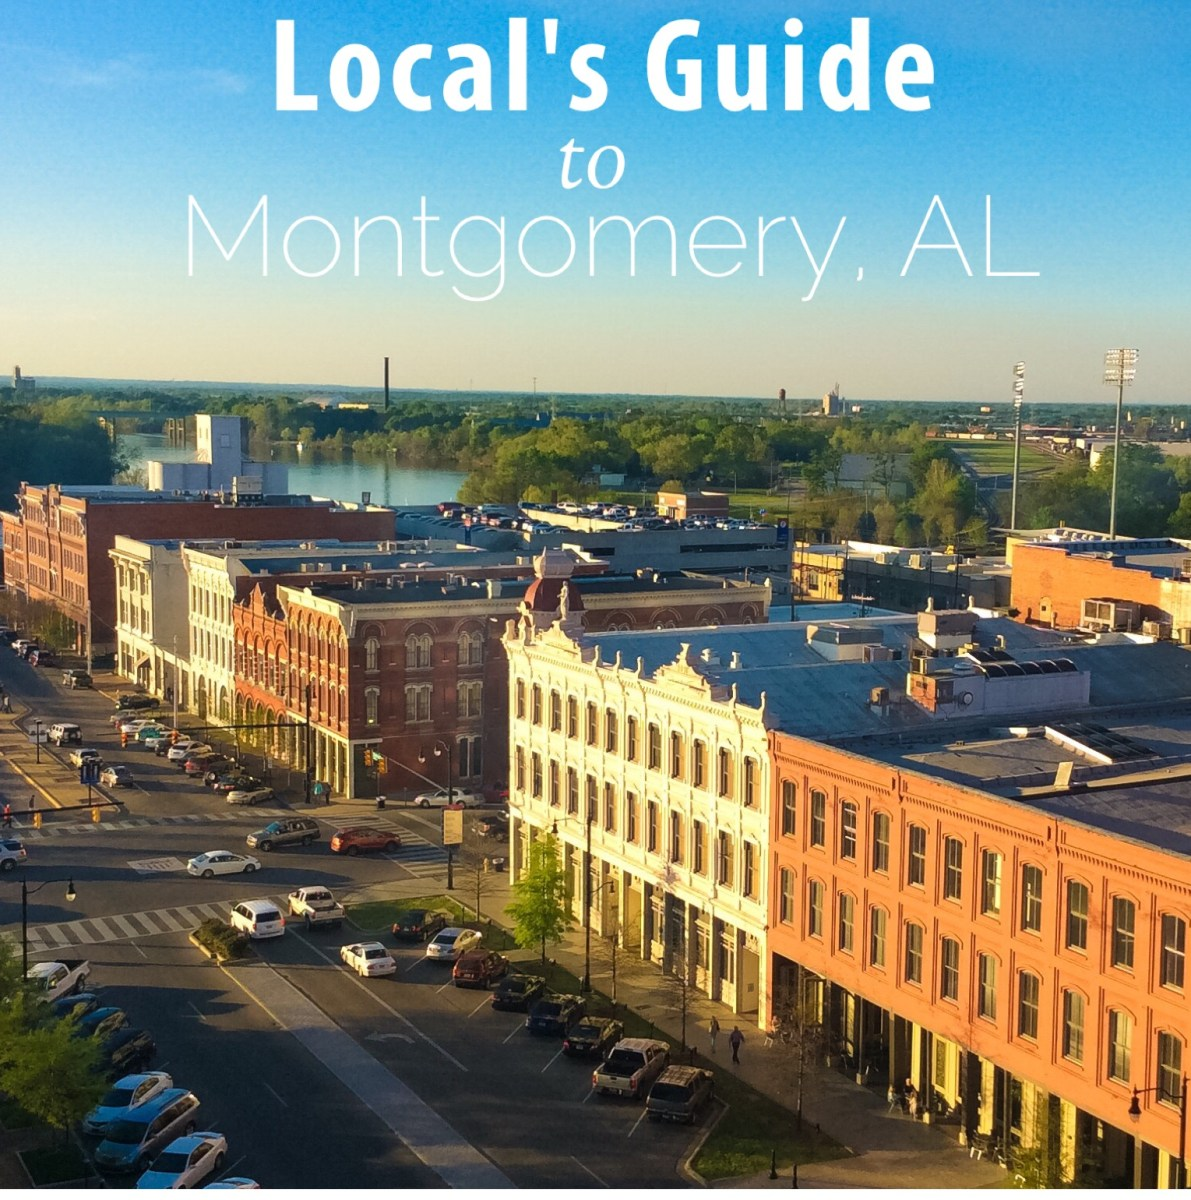 Local's Food Guide to Montgomery, Alabama